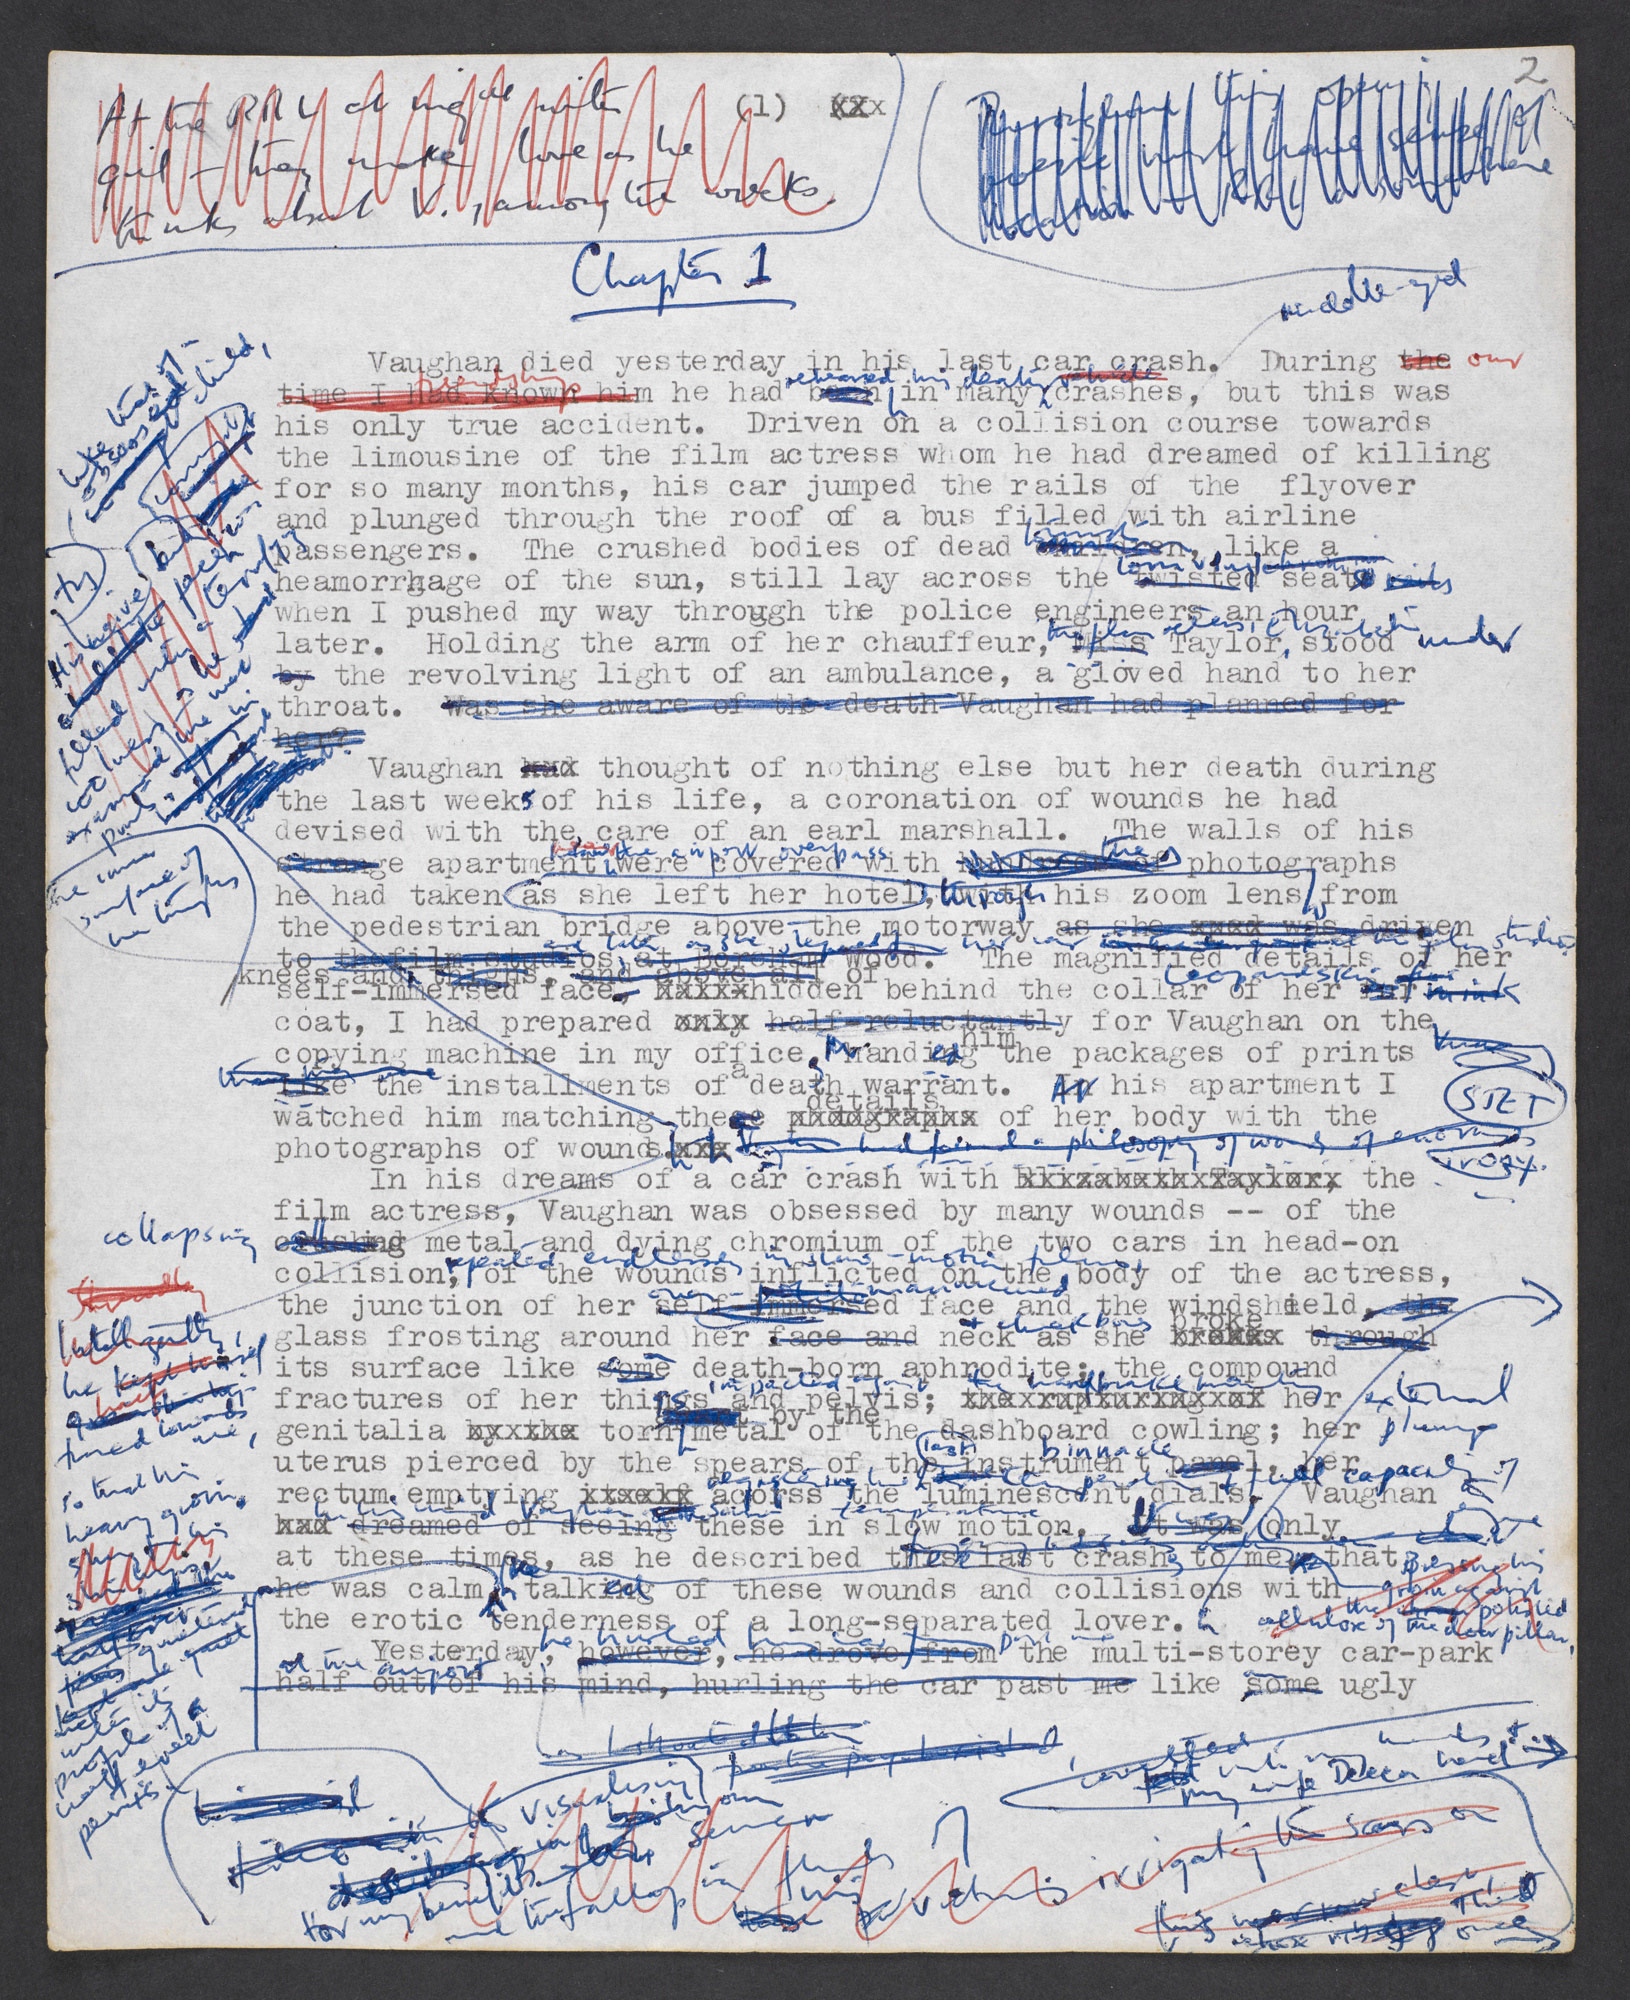 Typescript draft of Crash by J G Ballard, revised by hand